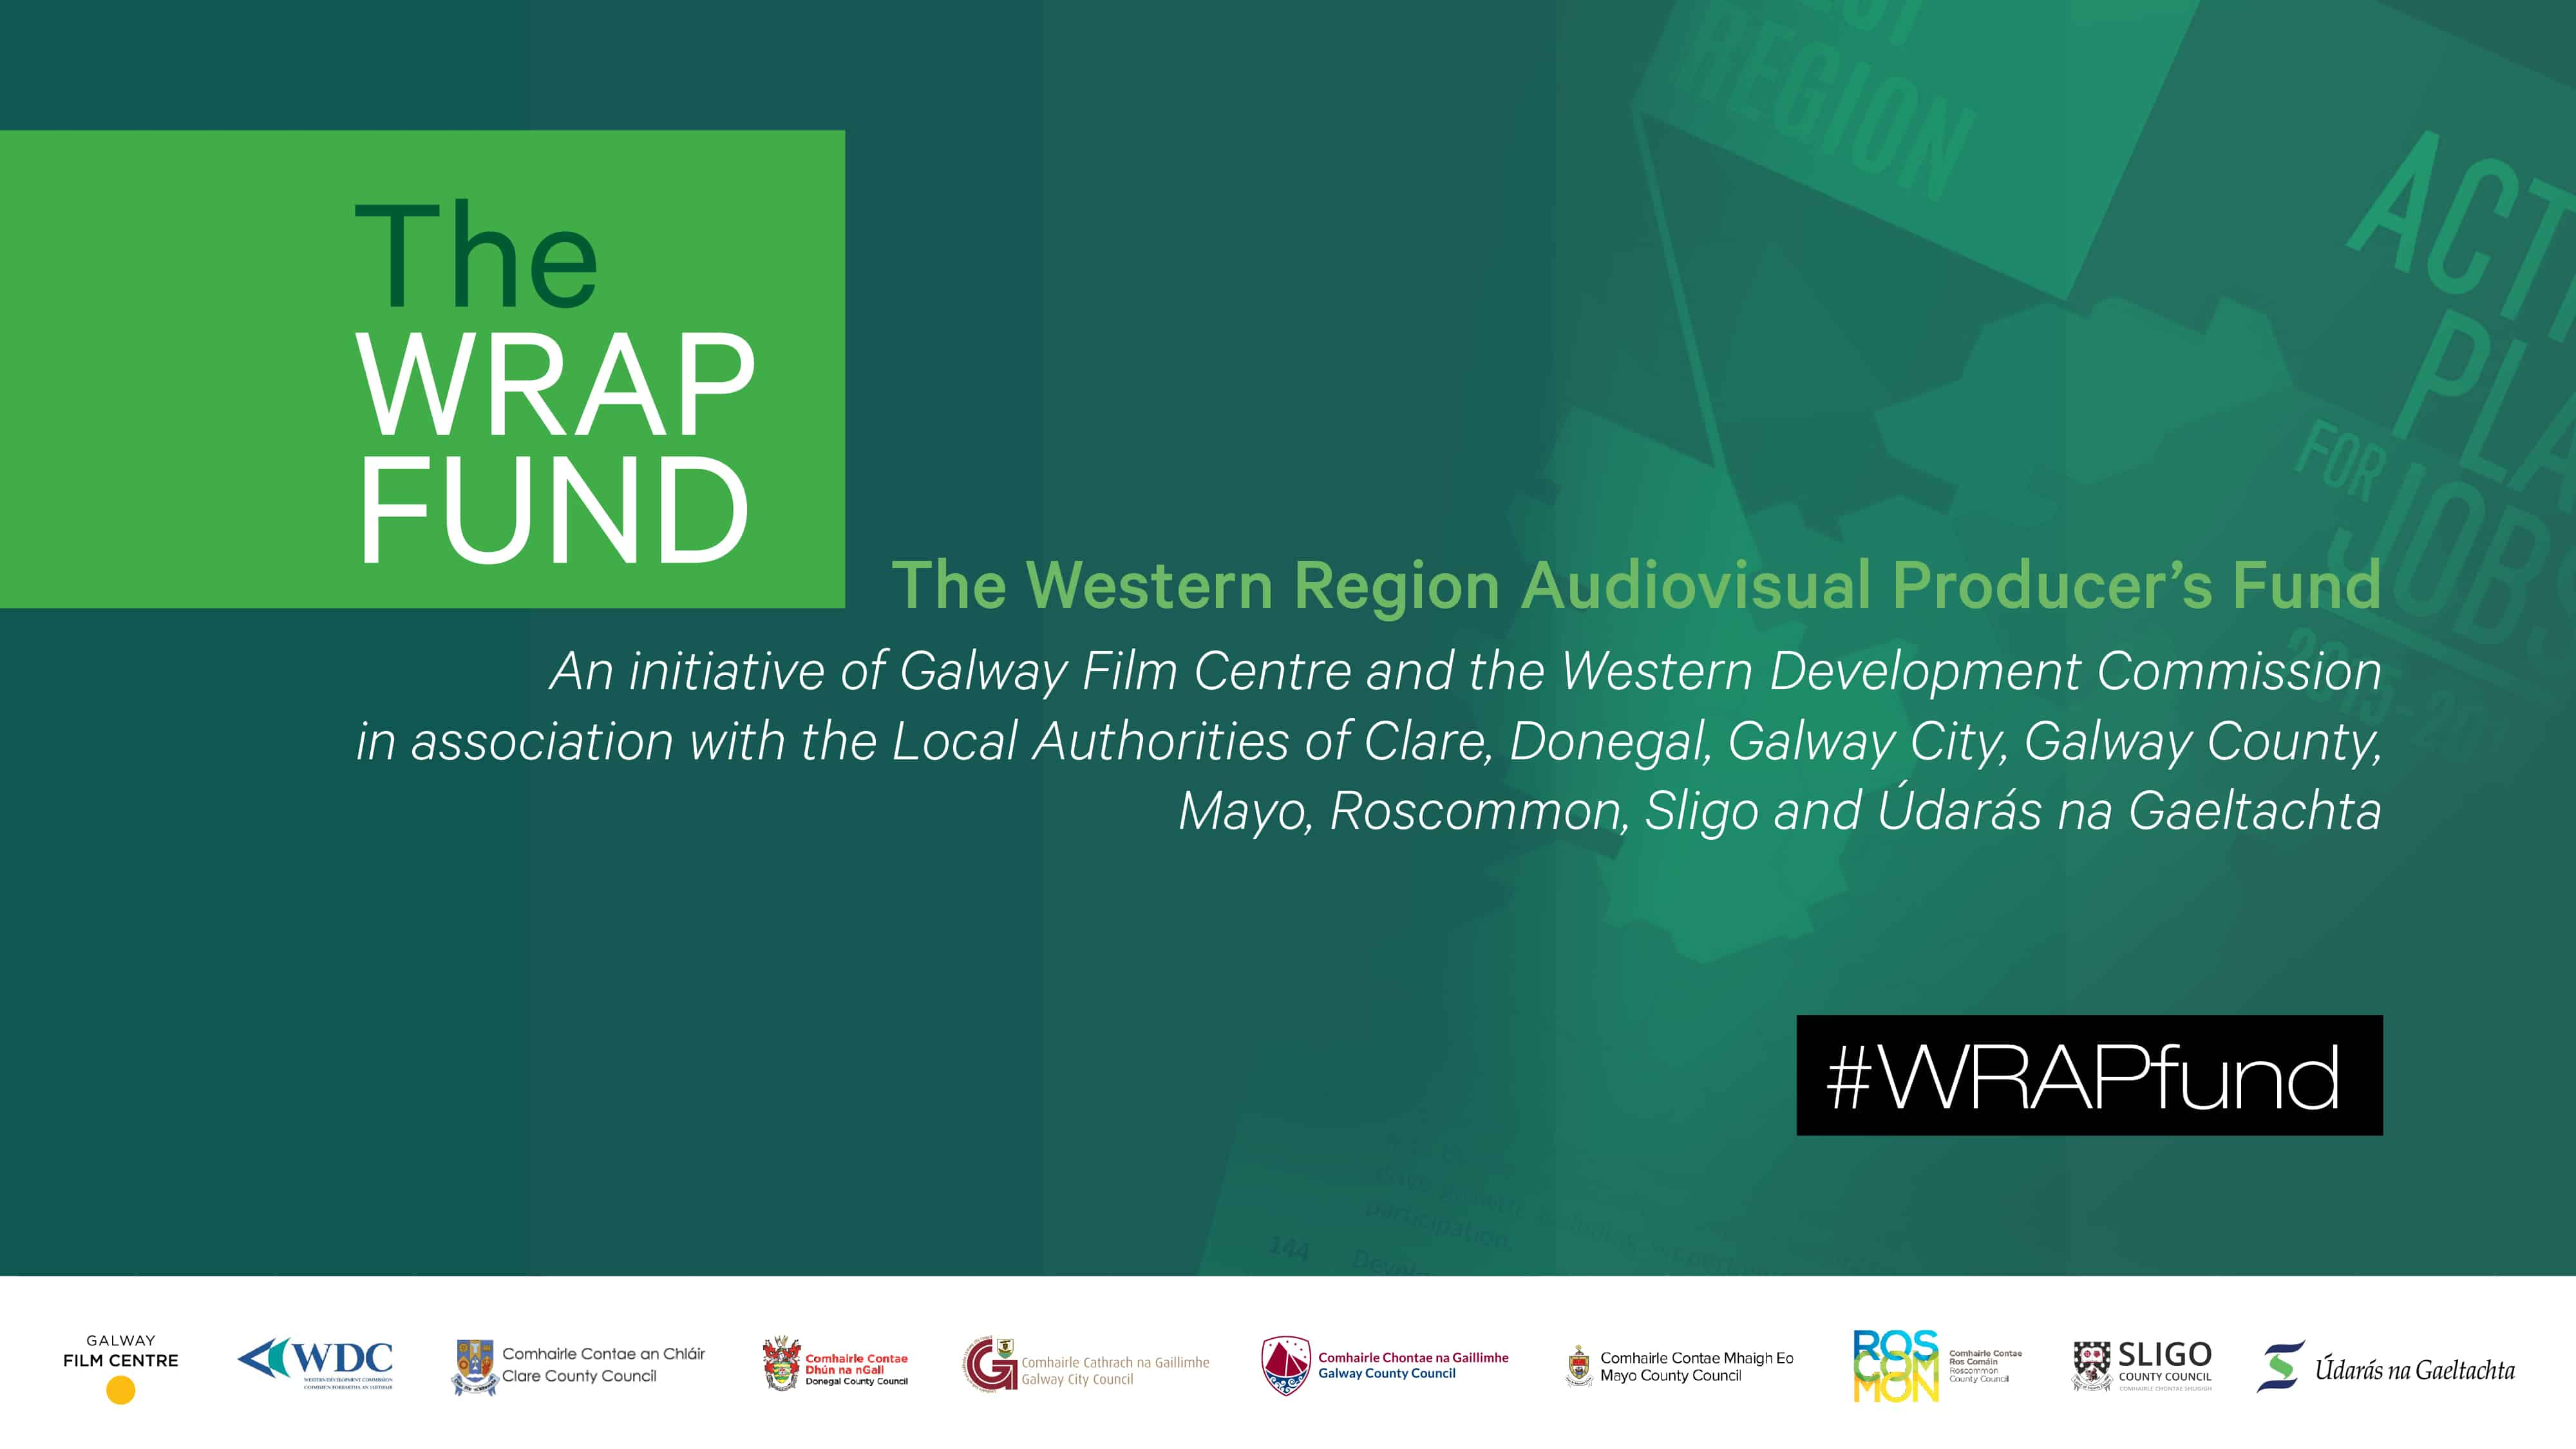 Photographs from the WRAP Fund Announcement